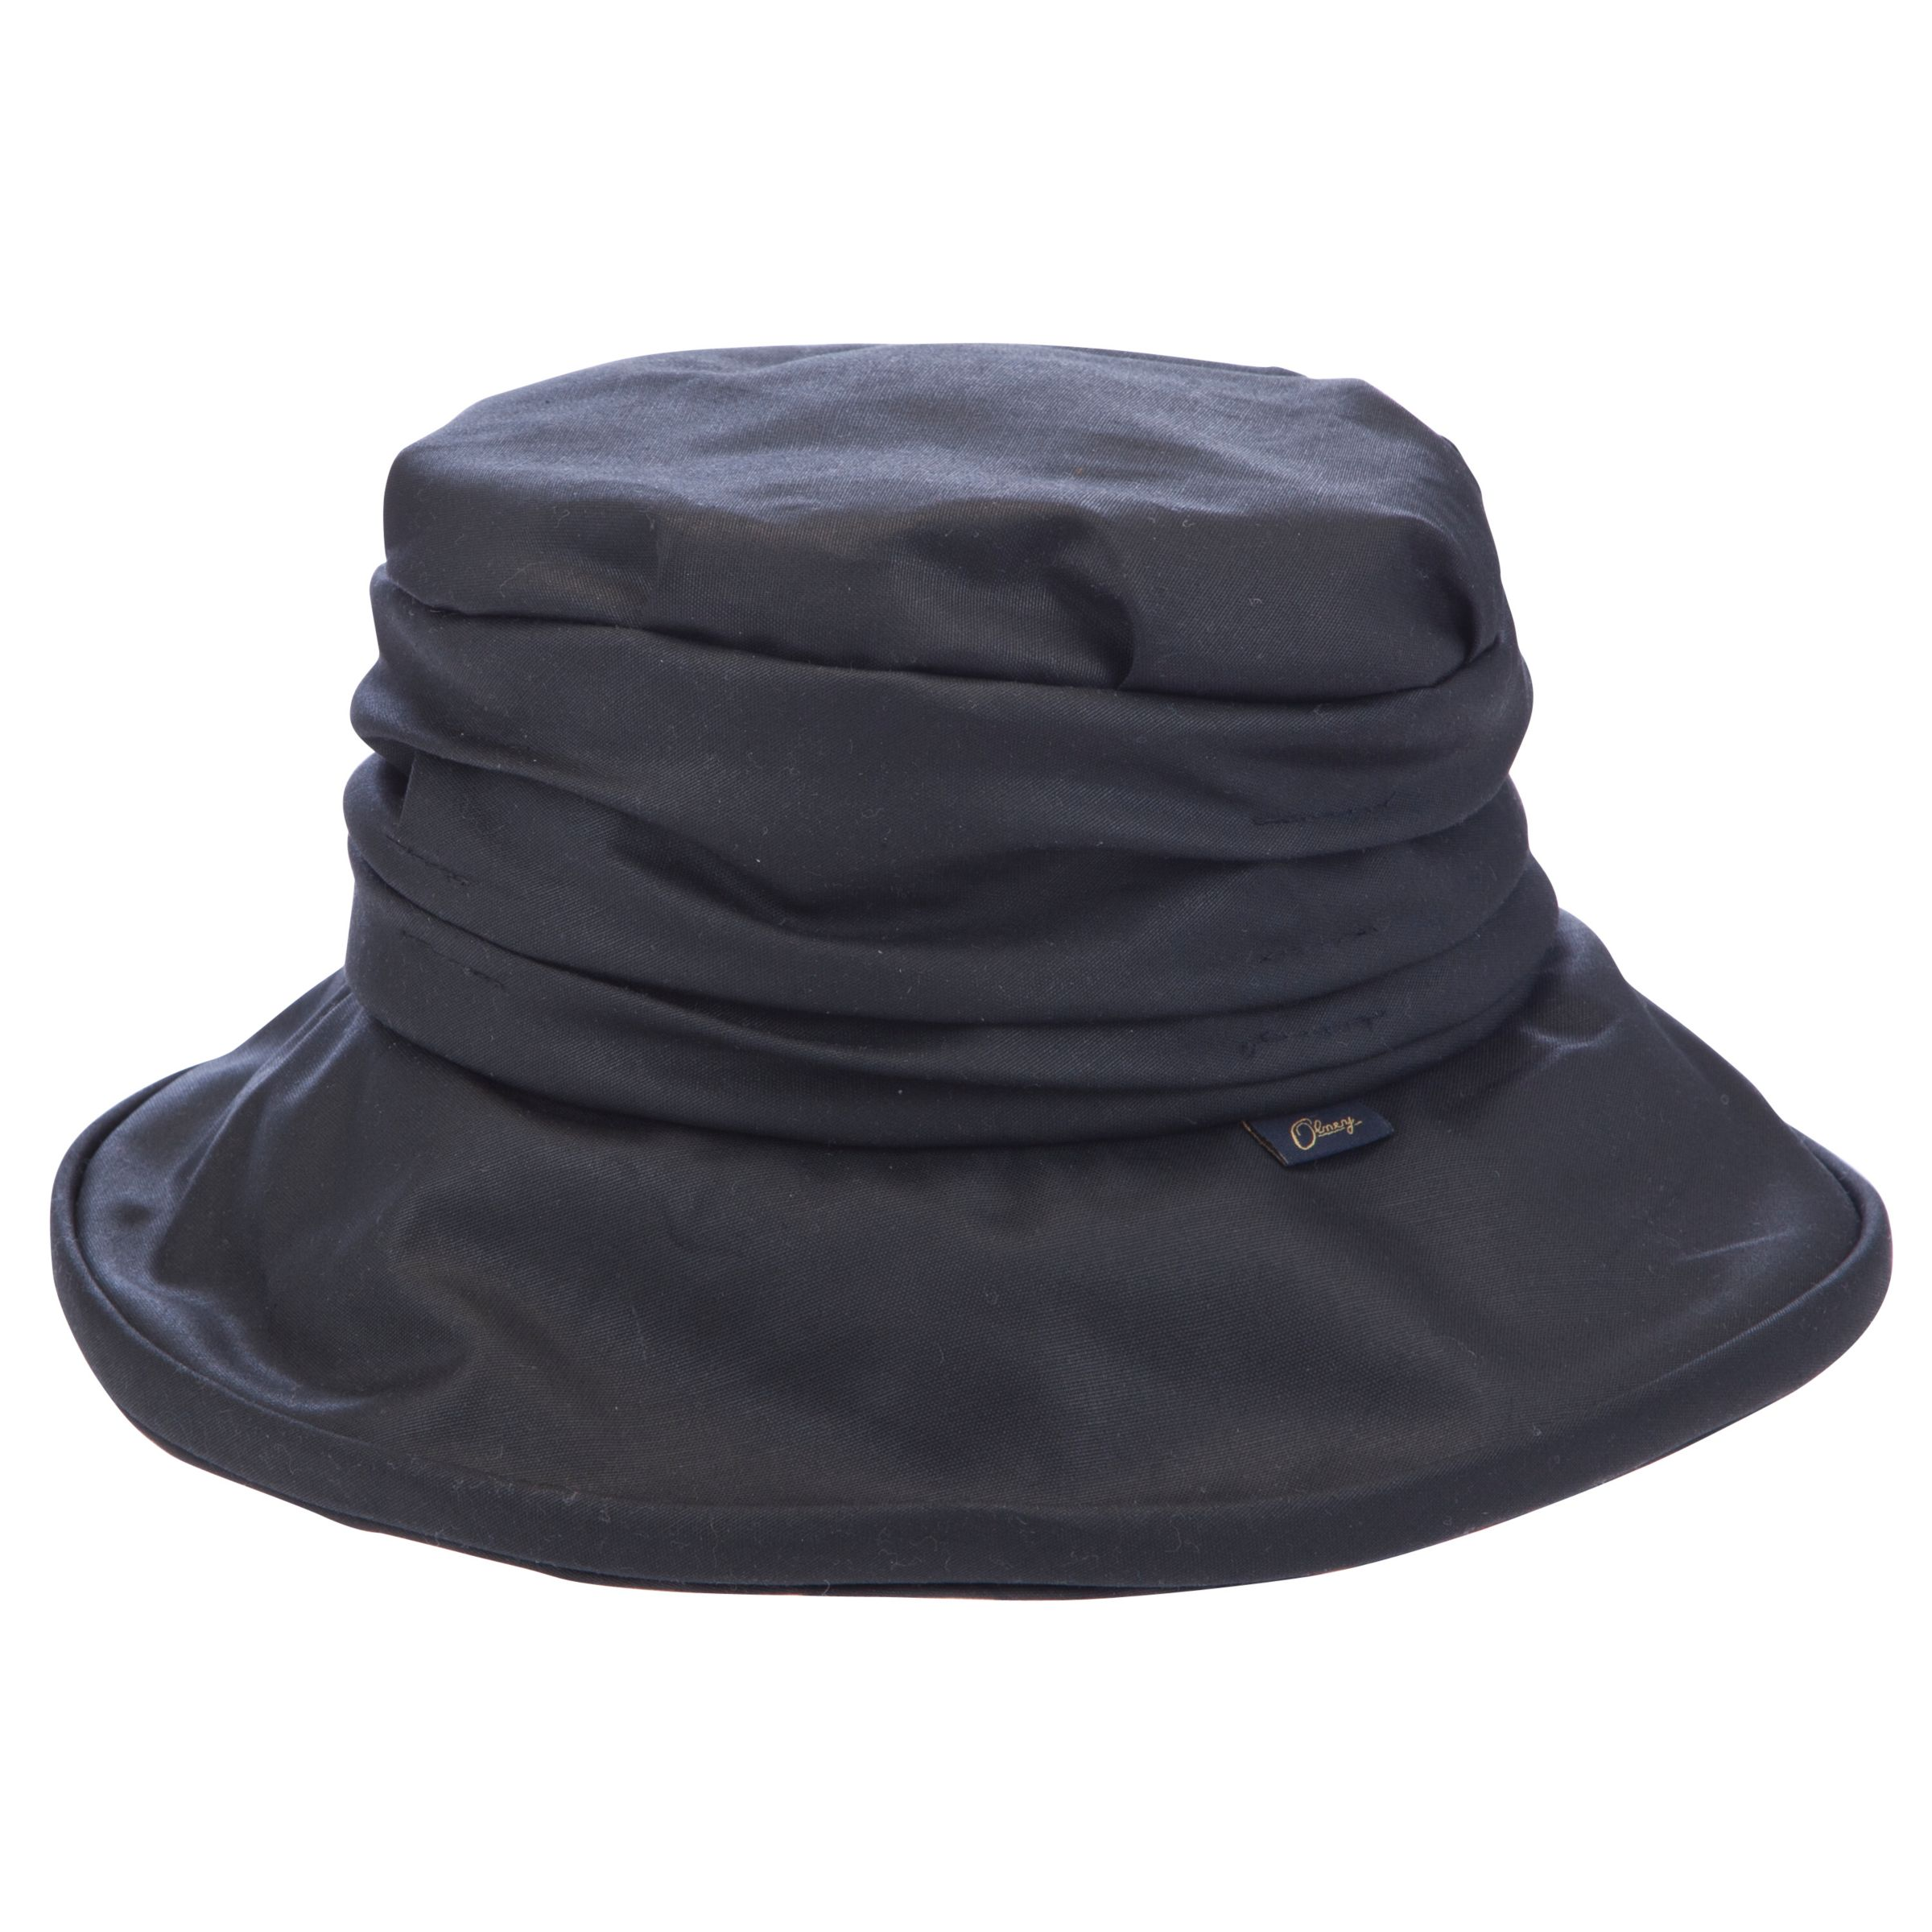 31e5ff40a23 Olney Annabelle Wax Rouched Hat, Black at John Lewis & Partners